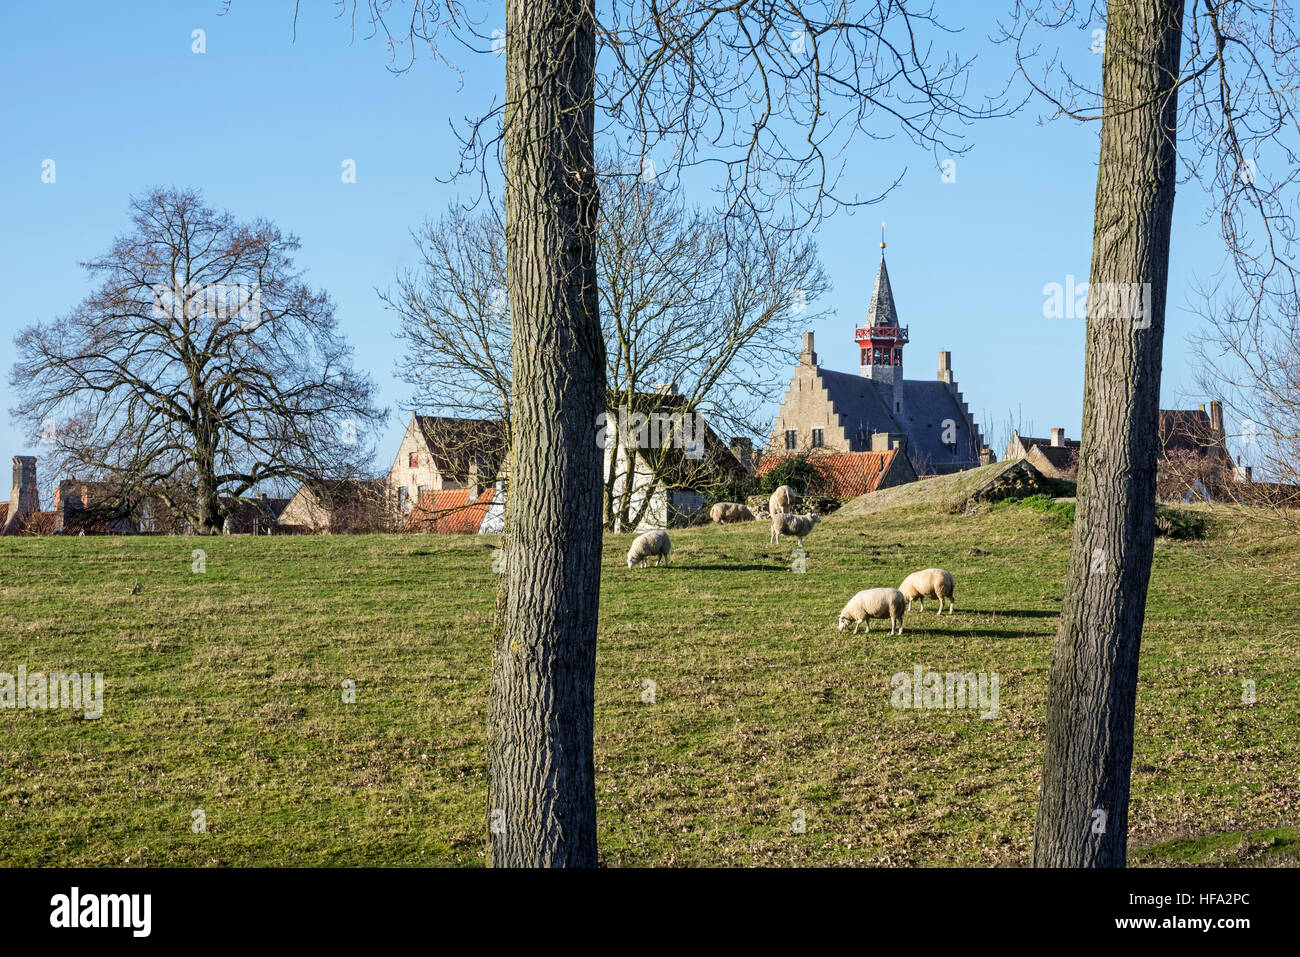 Sheep grazing in polder and the Damme town hall in winter, West Flanders, Belgium - Stock Image